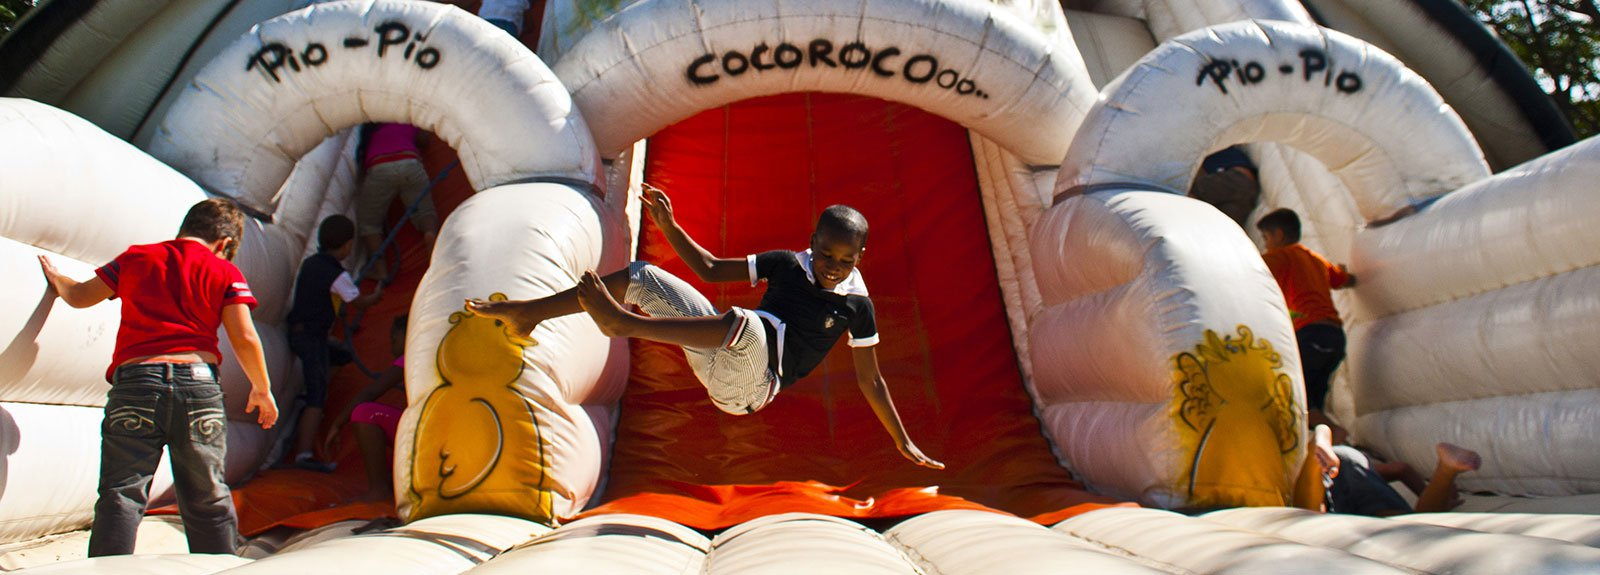 Kids jumping on an inflatable game